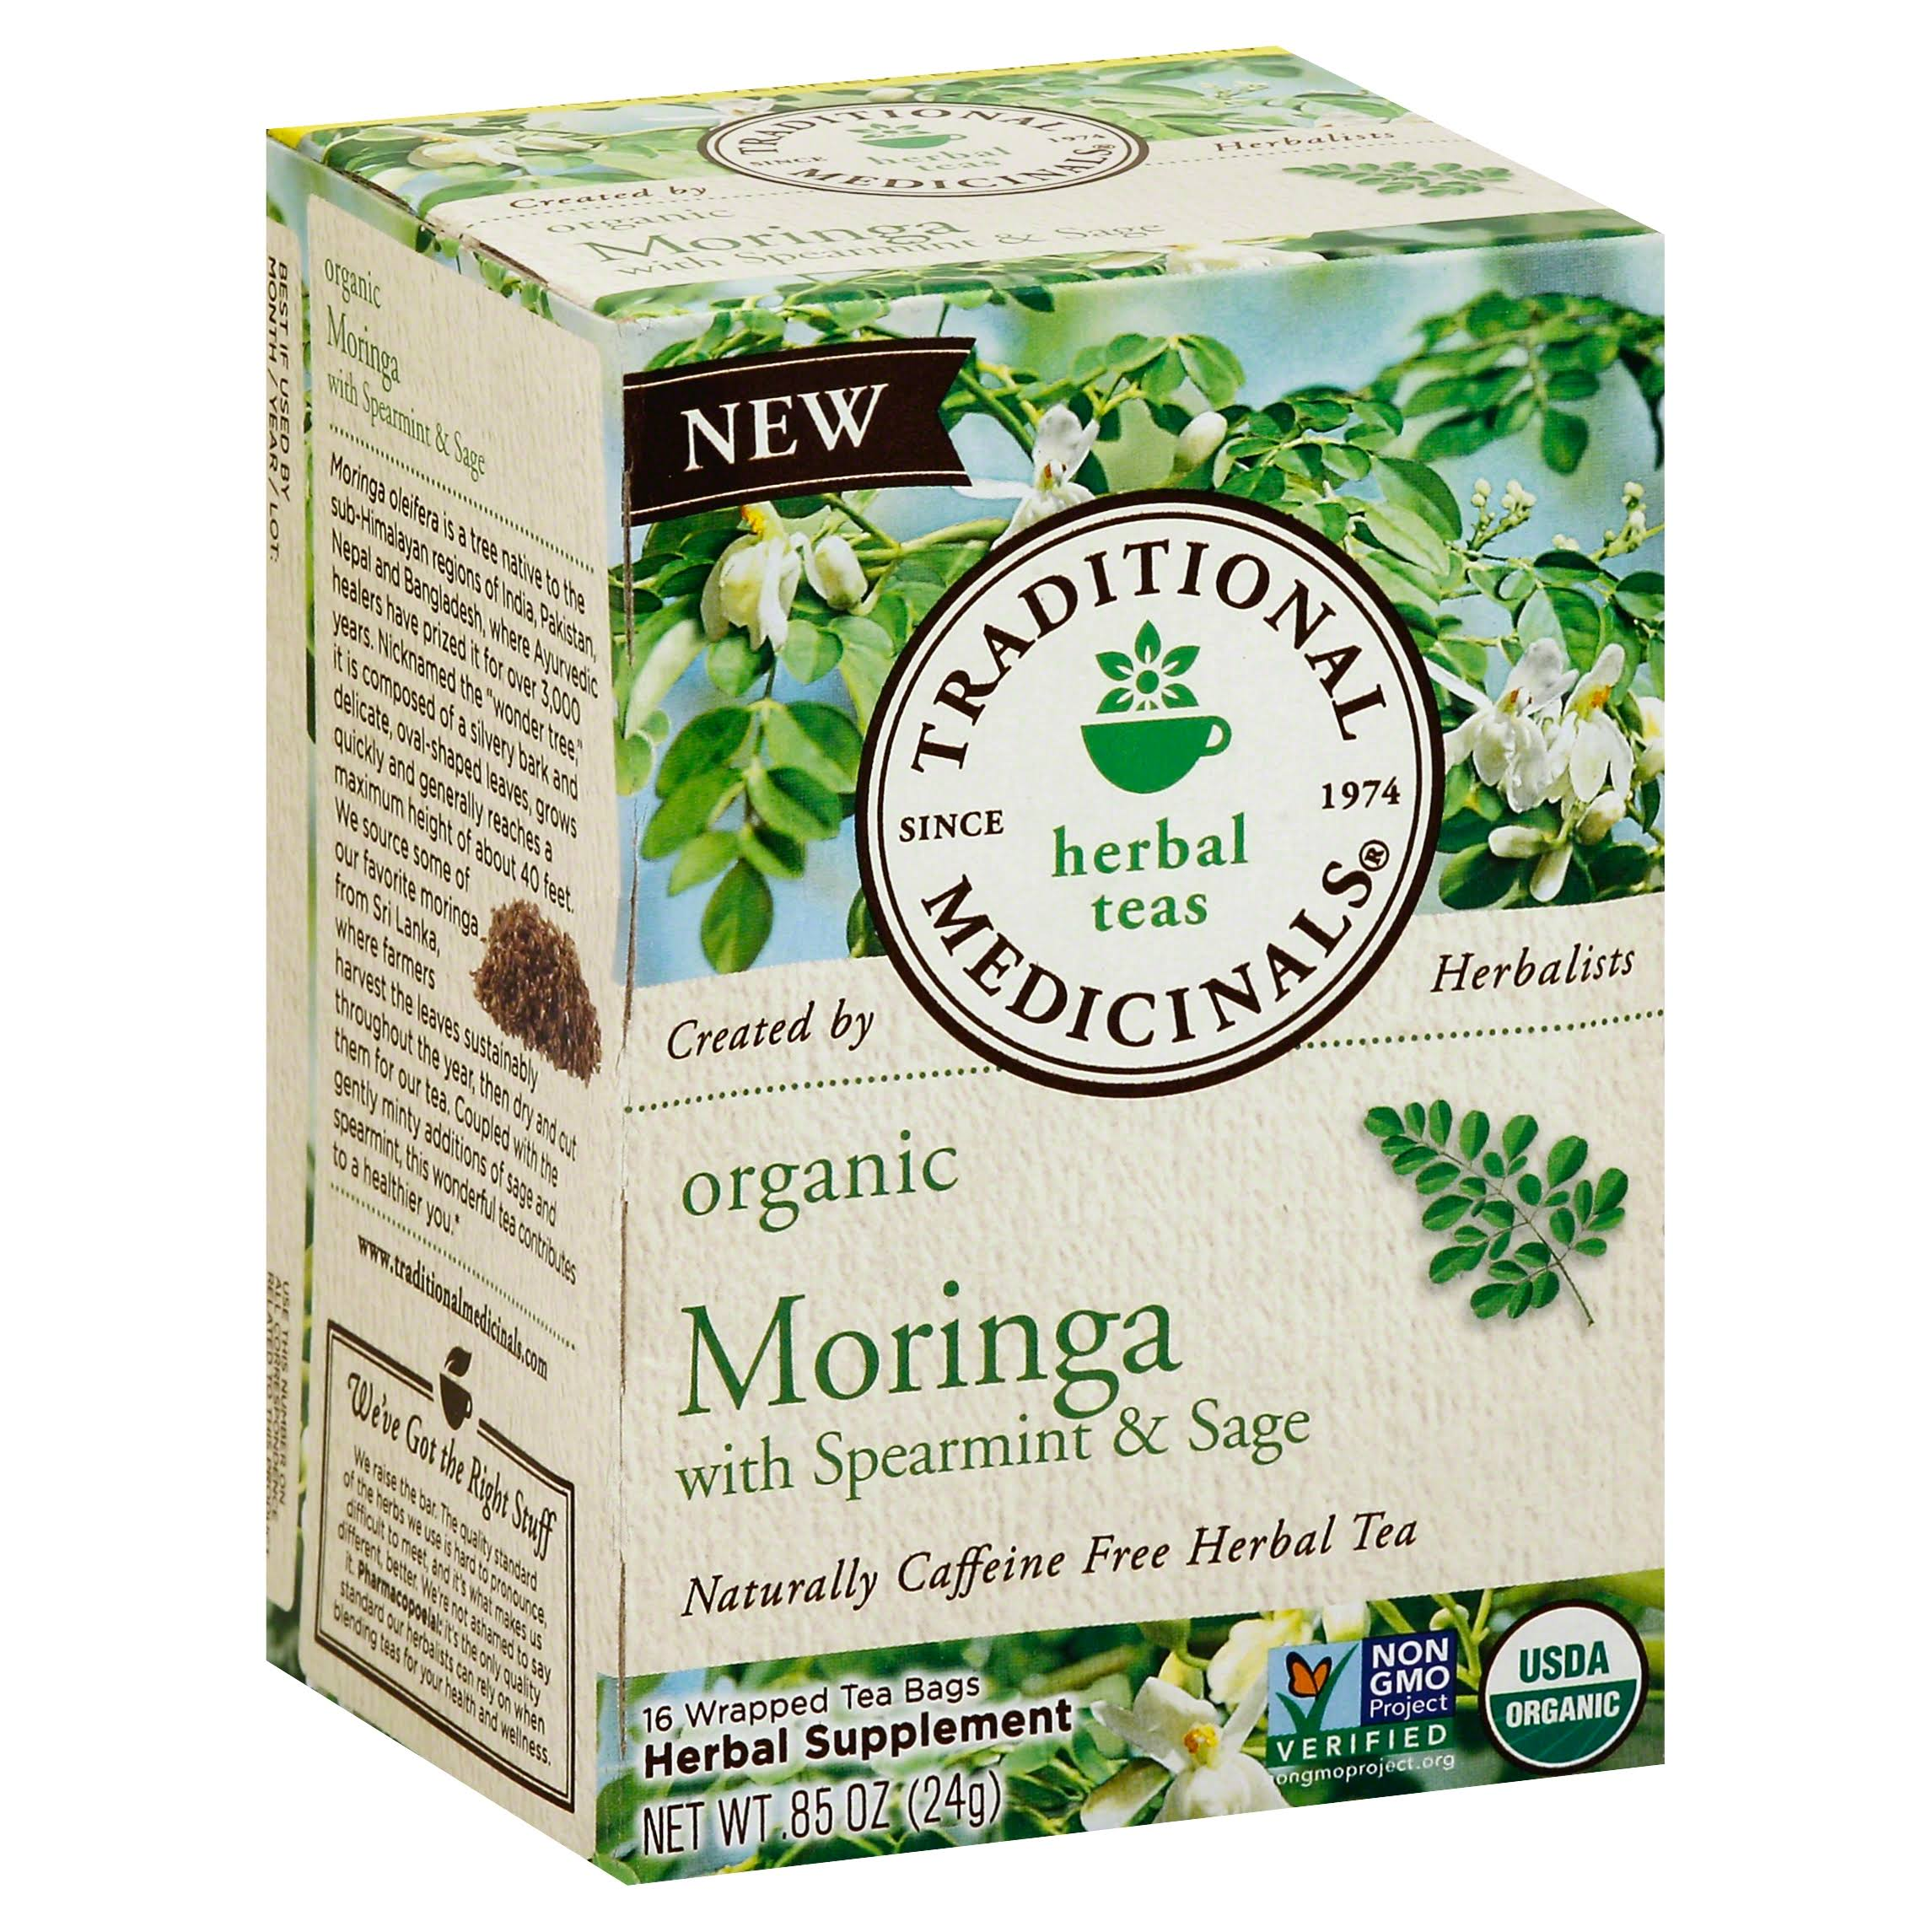 Traditional Medicinals Organic Moringa with Spearmint and Sage Herbal Tea - 16ct